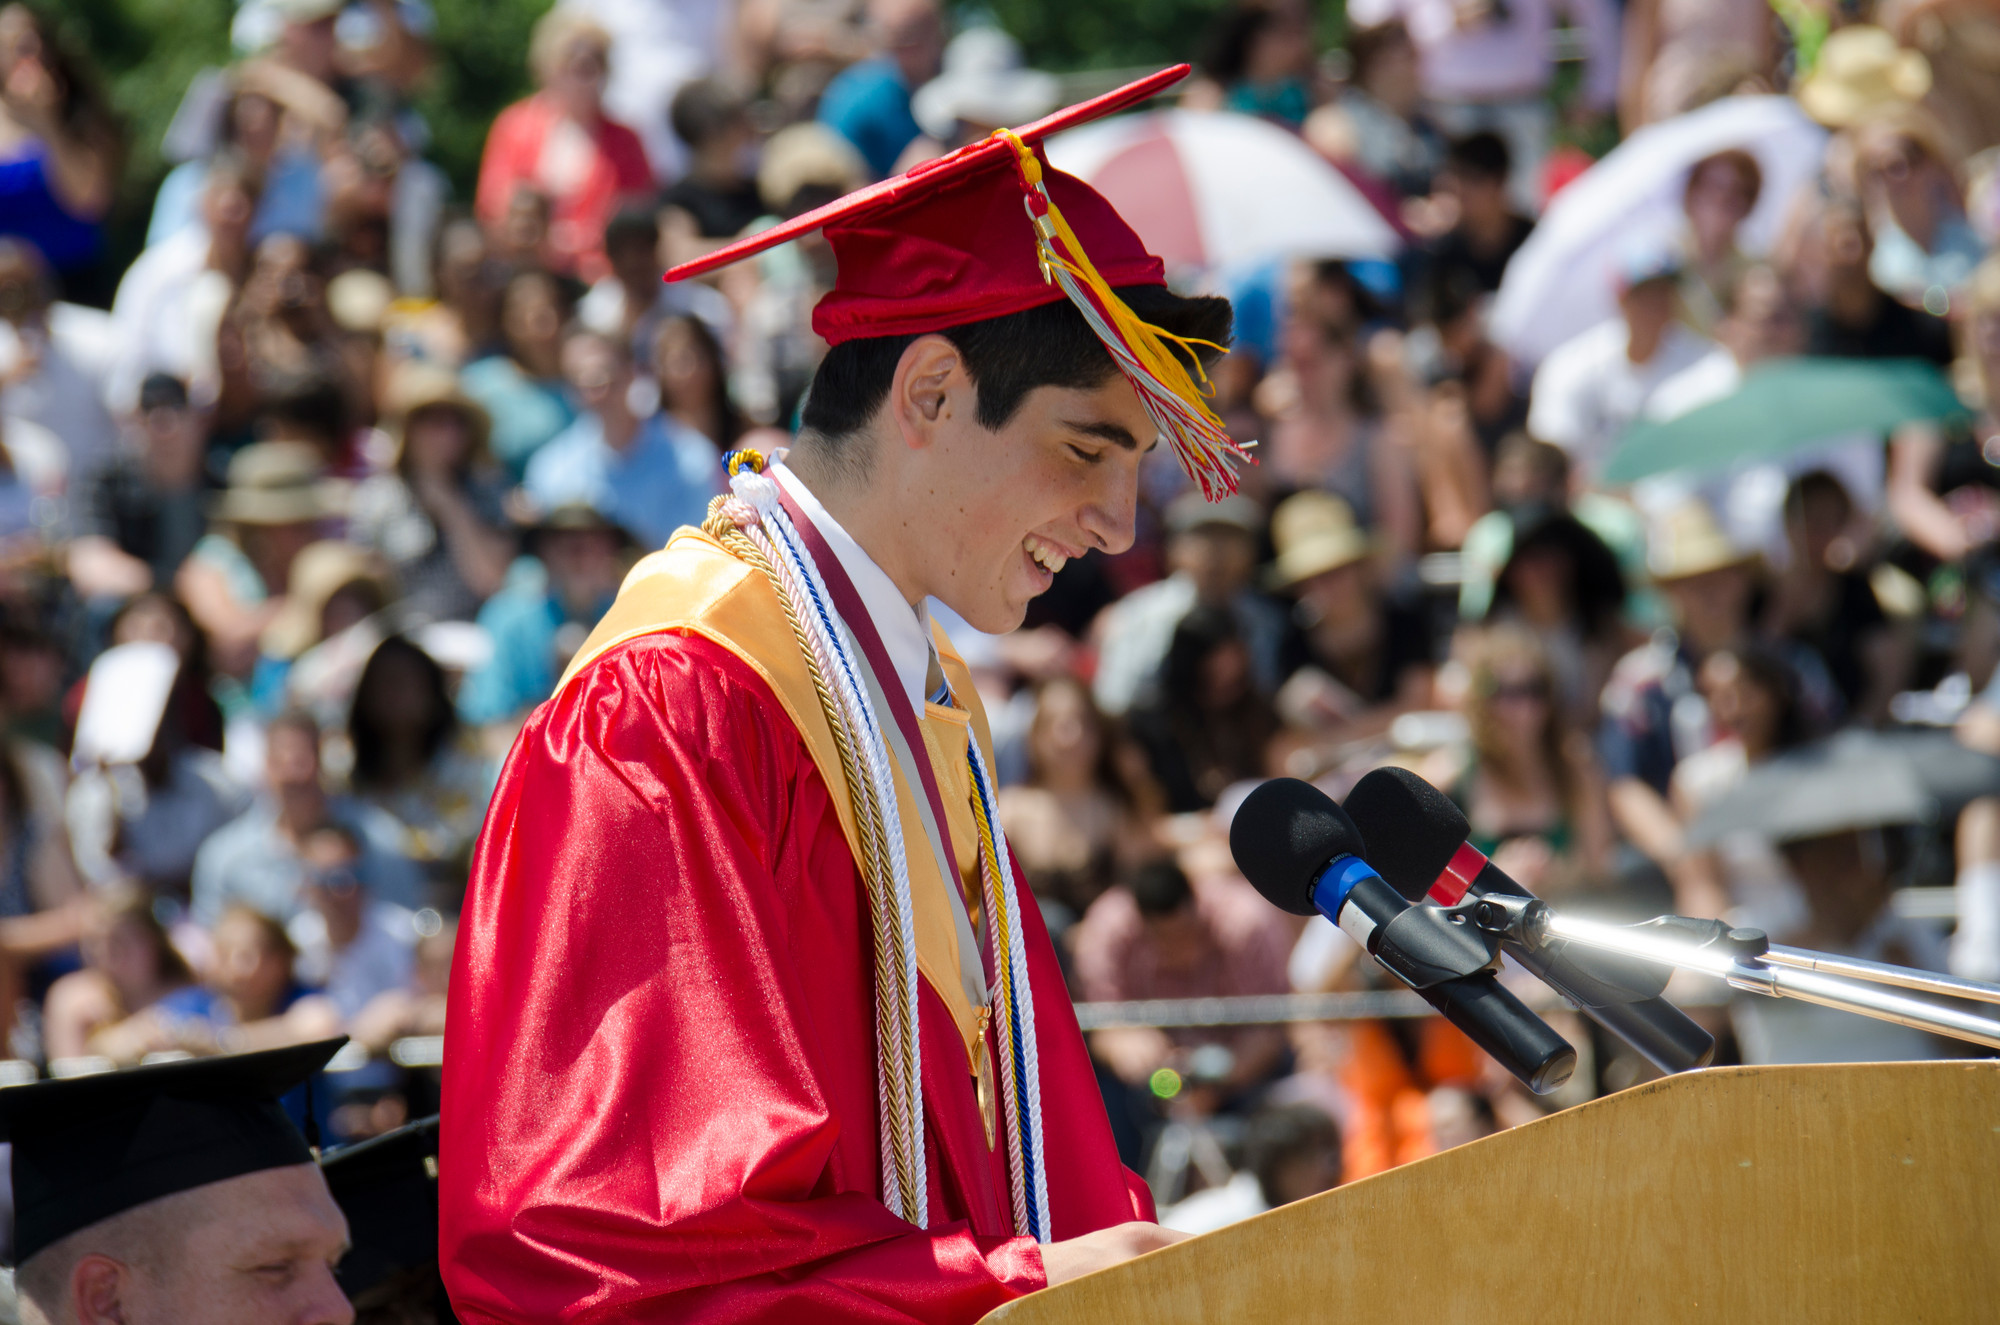 W.T. Clarke salutatorian Alexander Evangelatos encouraged his peers to experience new things and to not be afraid to fail.